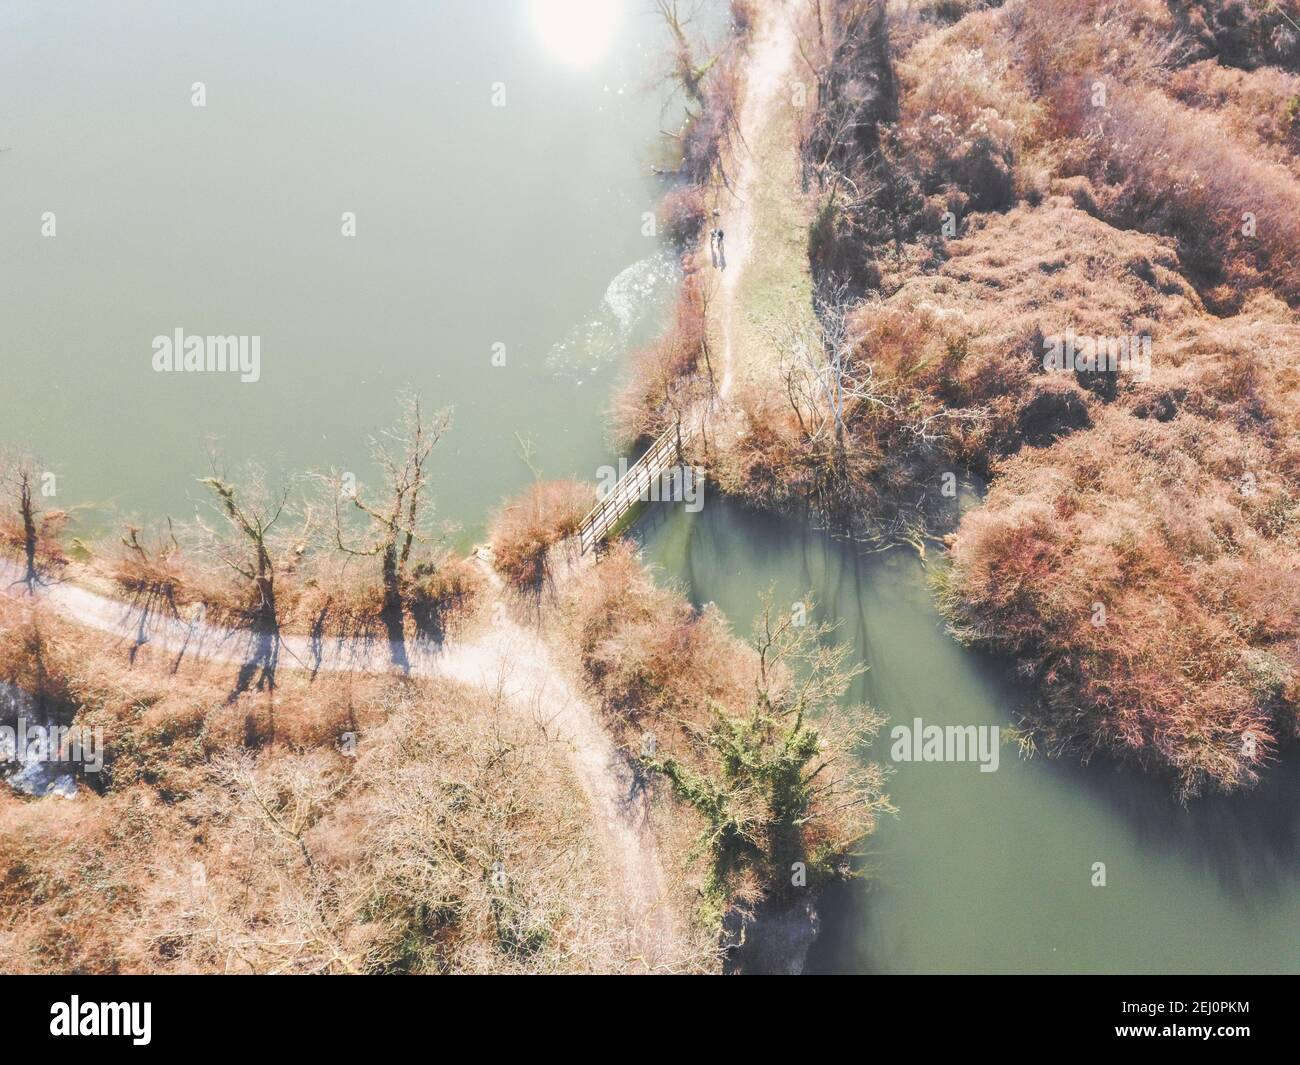 Aerial view of Savica fishing pond, located near eastern heating plant in Zagreb city, above secluded wooden bridge crossing water Stock Photo